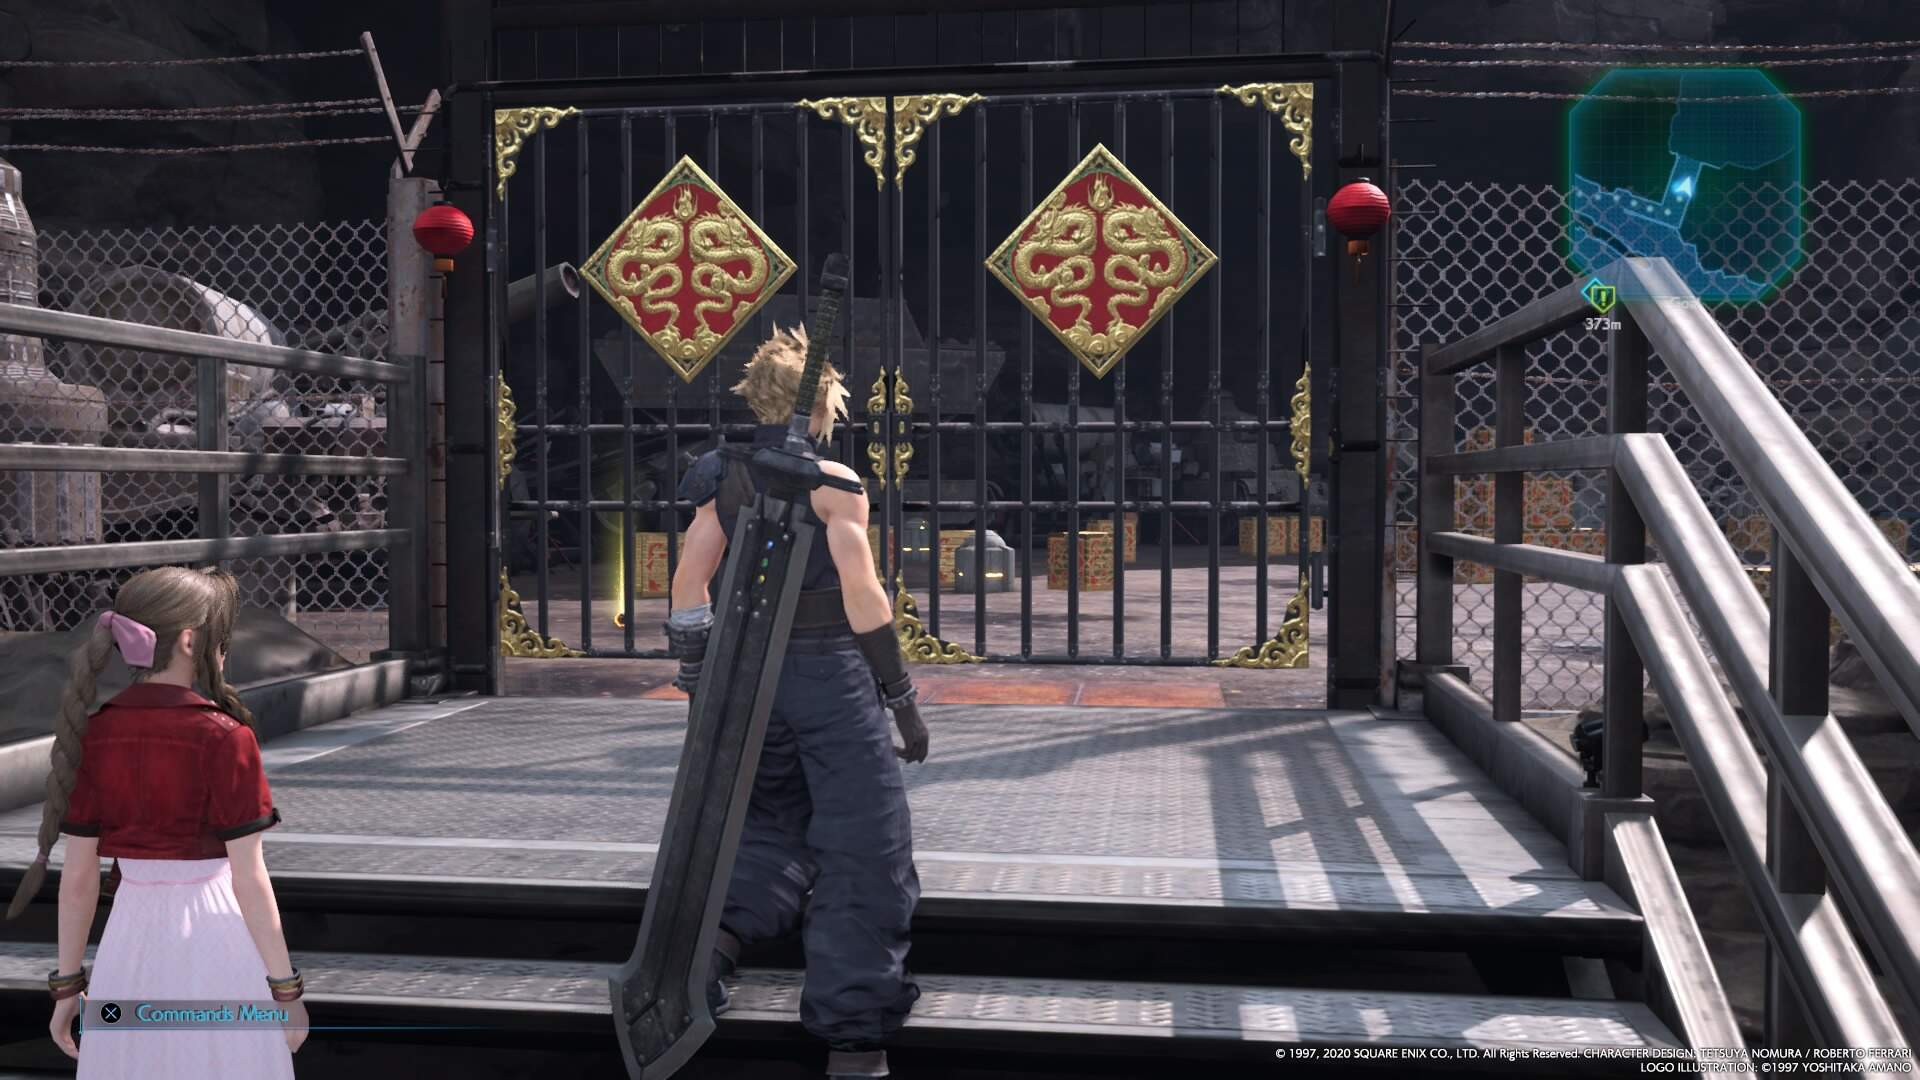 Final Fantasy 7 Remake: How to Open the Locked Gate in Sector 5 Steel Mountain